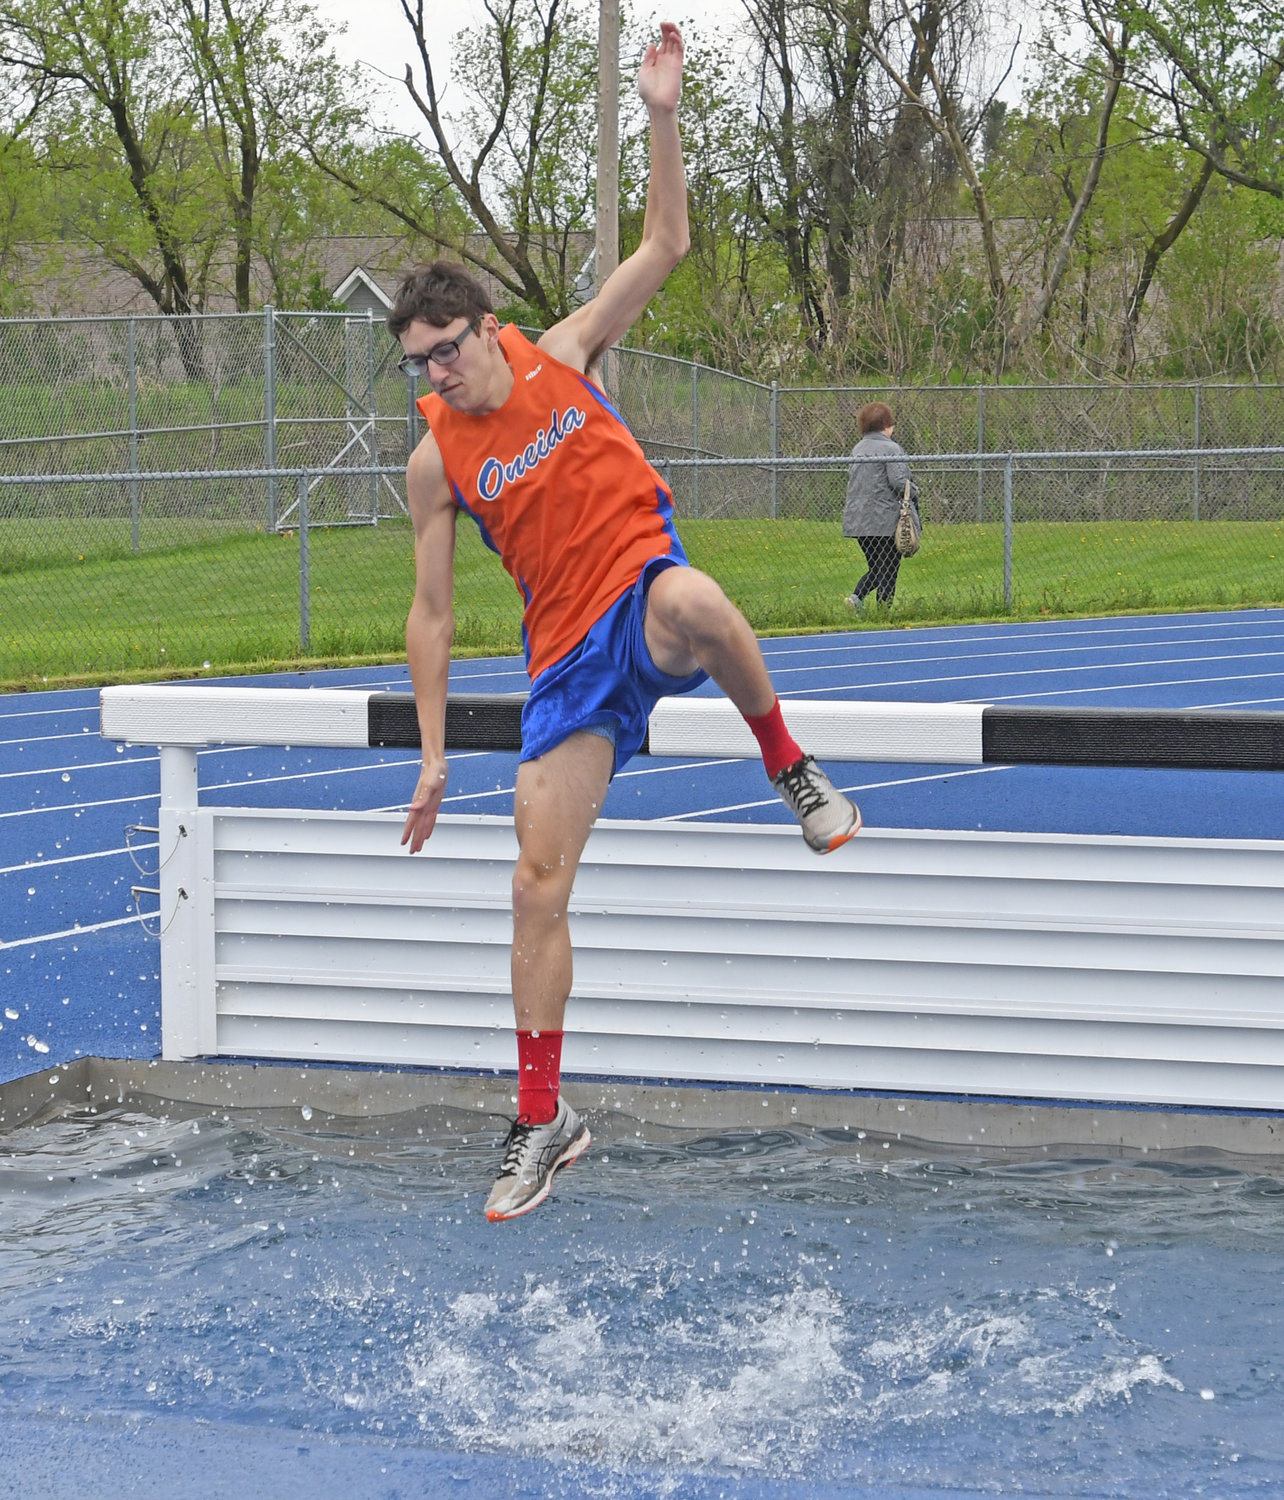 WATER LANDING — Philip White, a junior from Oneida, lands beyond the hurdle during the steeplechase Friday at the Oneida Invitational. He finished 15th in the event.